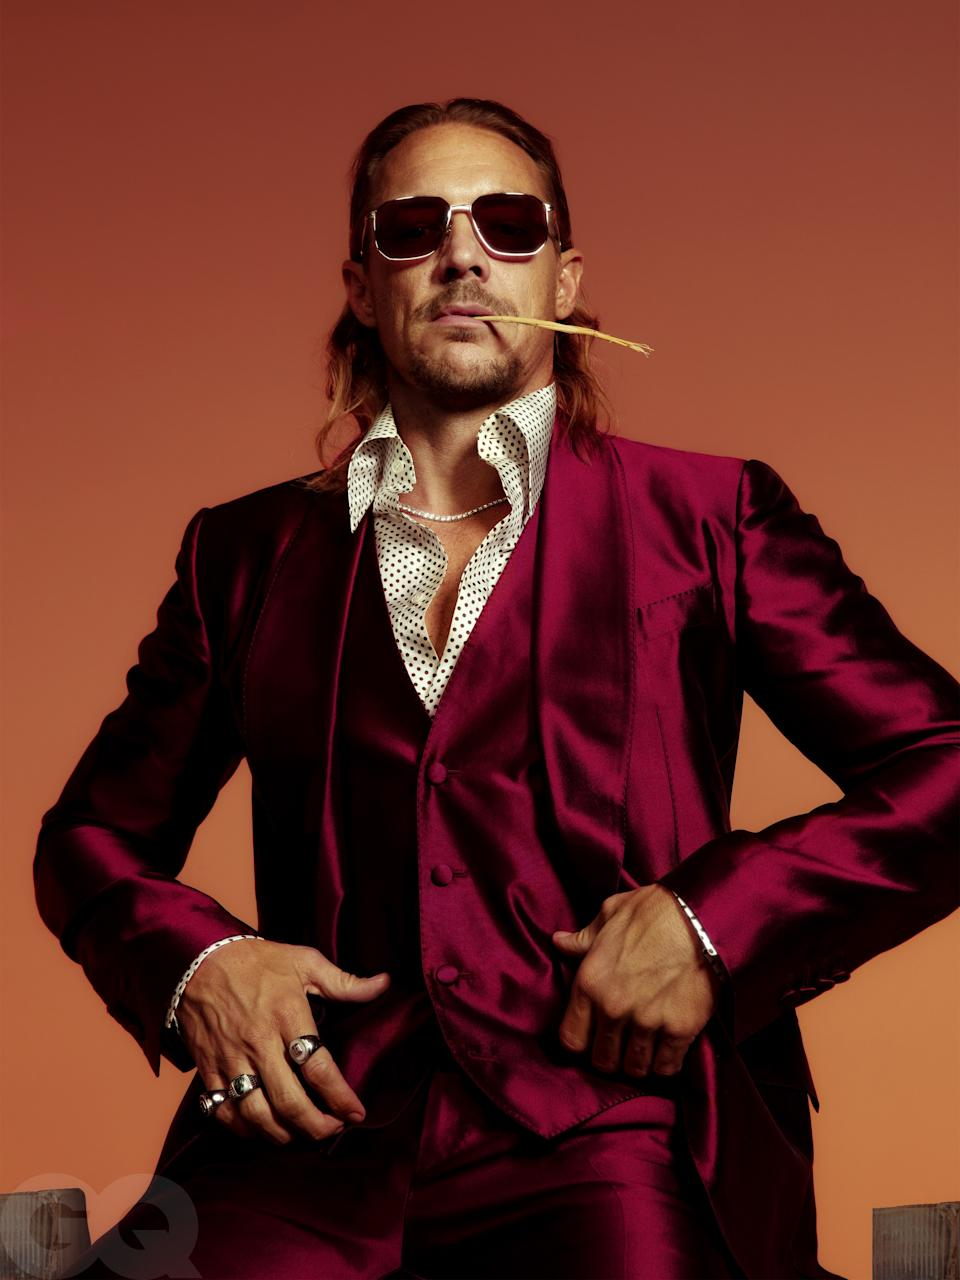 """<cite class=""""credit"""">Suit, $4,395, and shirt, $1,195, by Dolce & Gabbana / Sunglasses, $310, by Persol / Necklace, $67,200, by Shay / Rings, $590 (on pinkie), and $780 (on index finger), by Othongthai / Ring, $229 (on ring finger), by LMJ</cite>"""